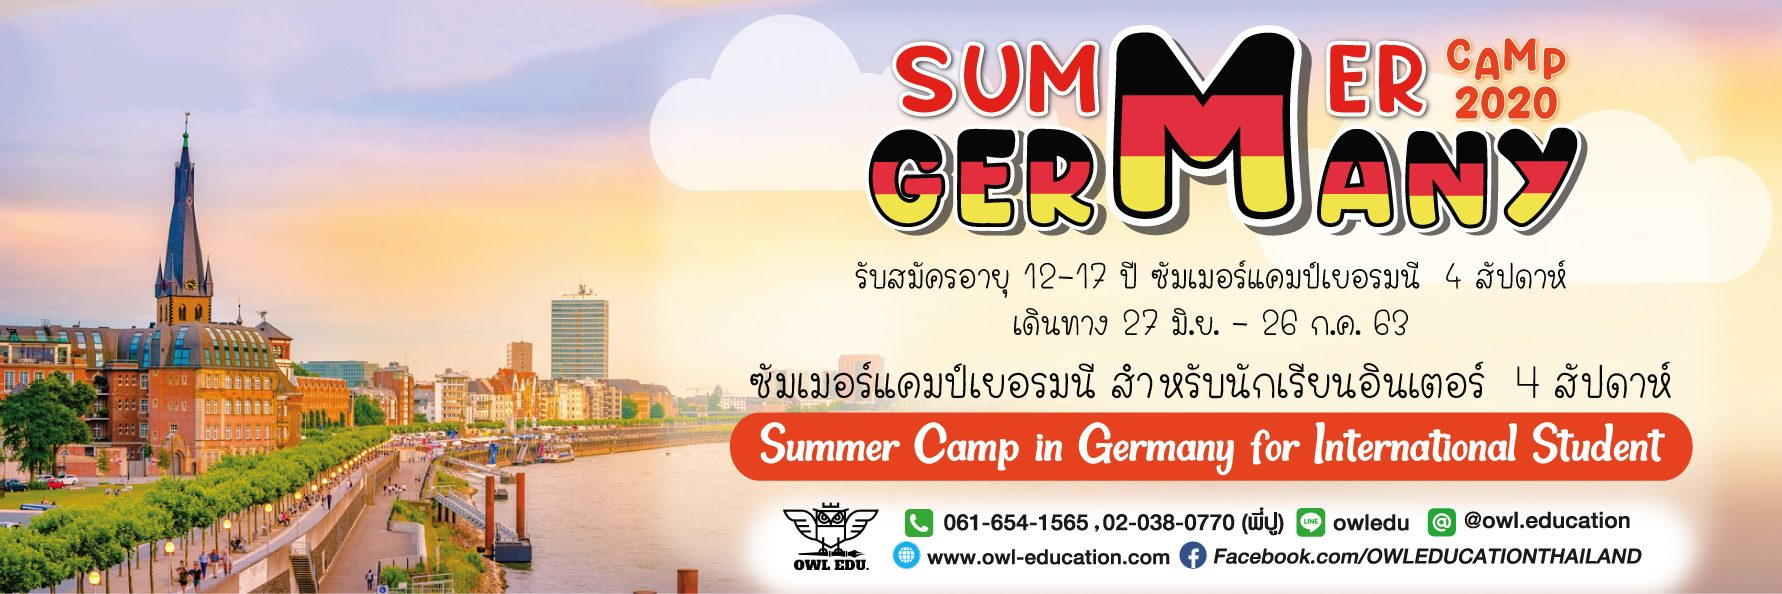 Summer Camp germany for International Student